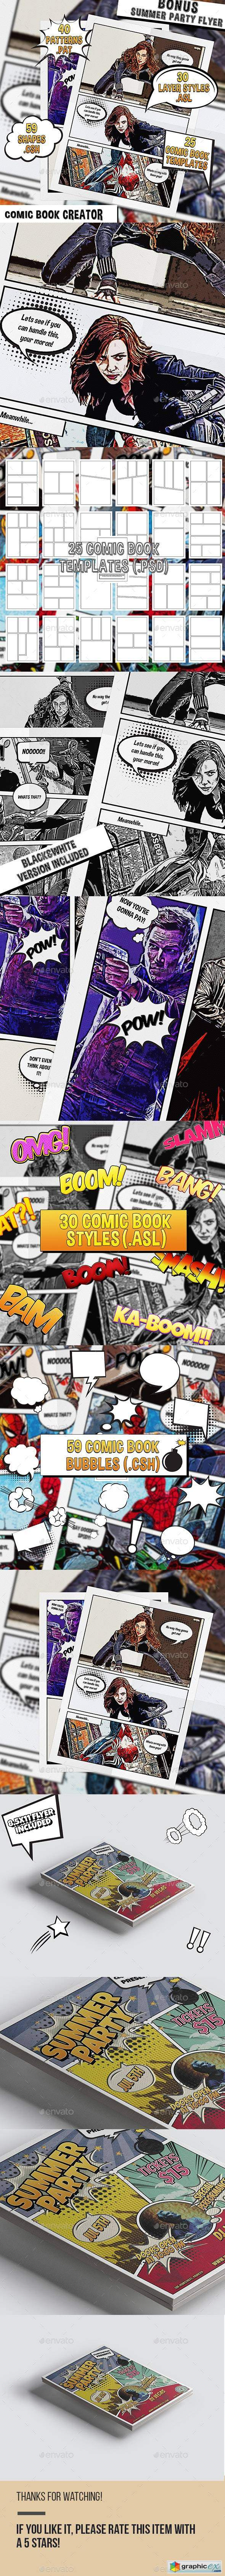 Comic Book Creator 23877625